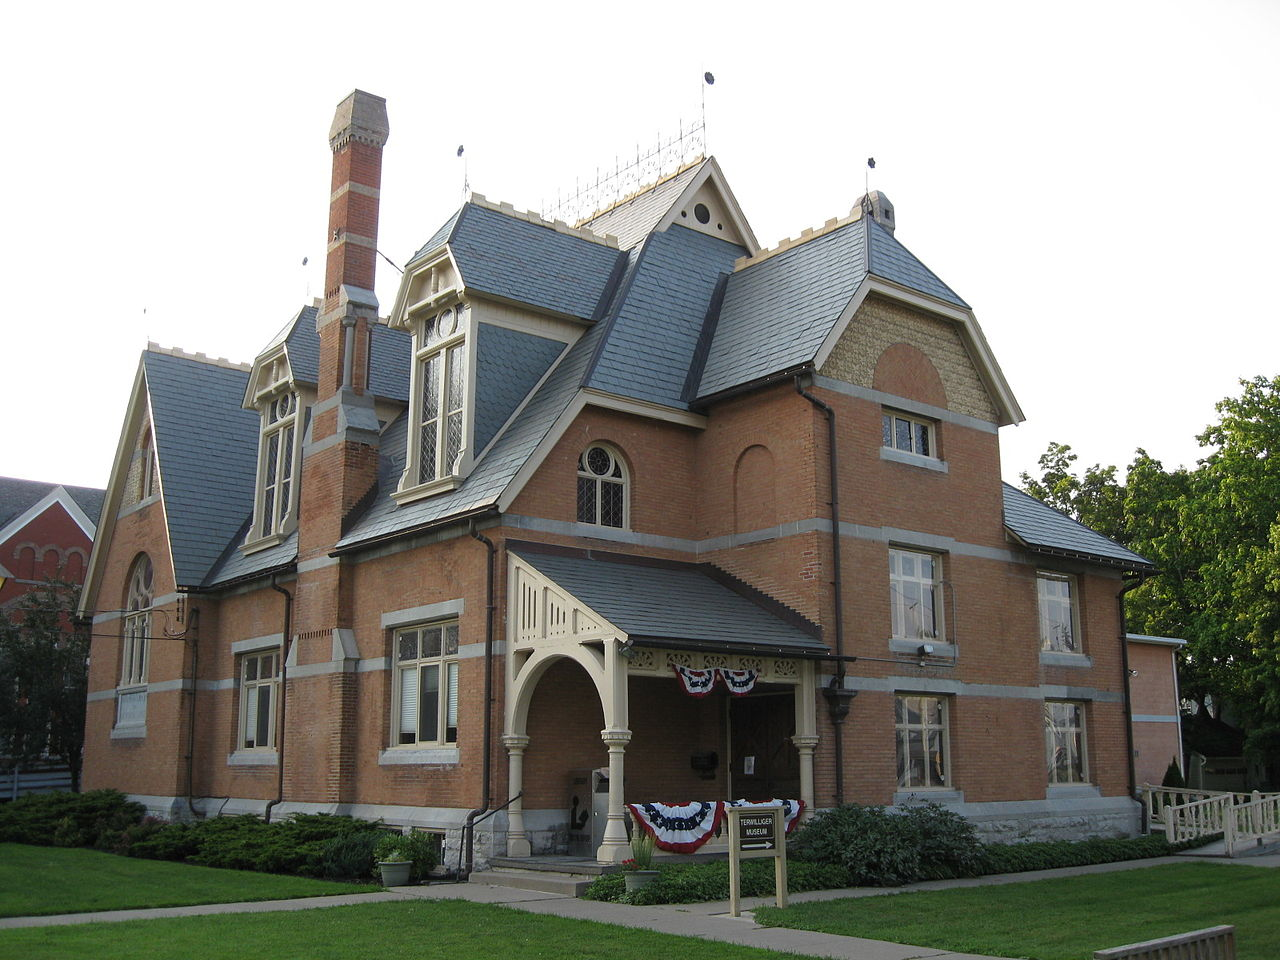 The Waterloo Library & Historical Society was founded in 1875 and is located in this historic Queen Anne building which was constructed in 1883.